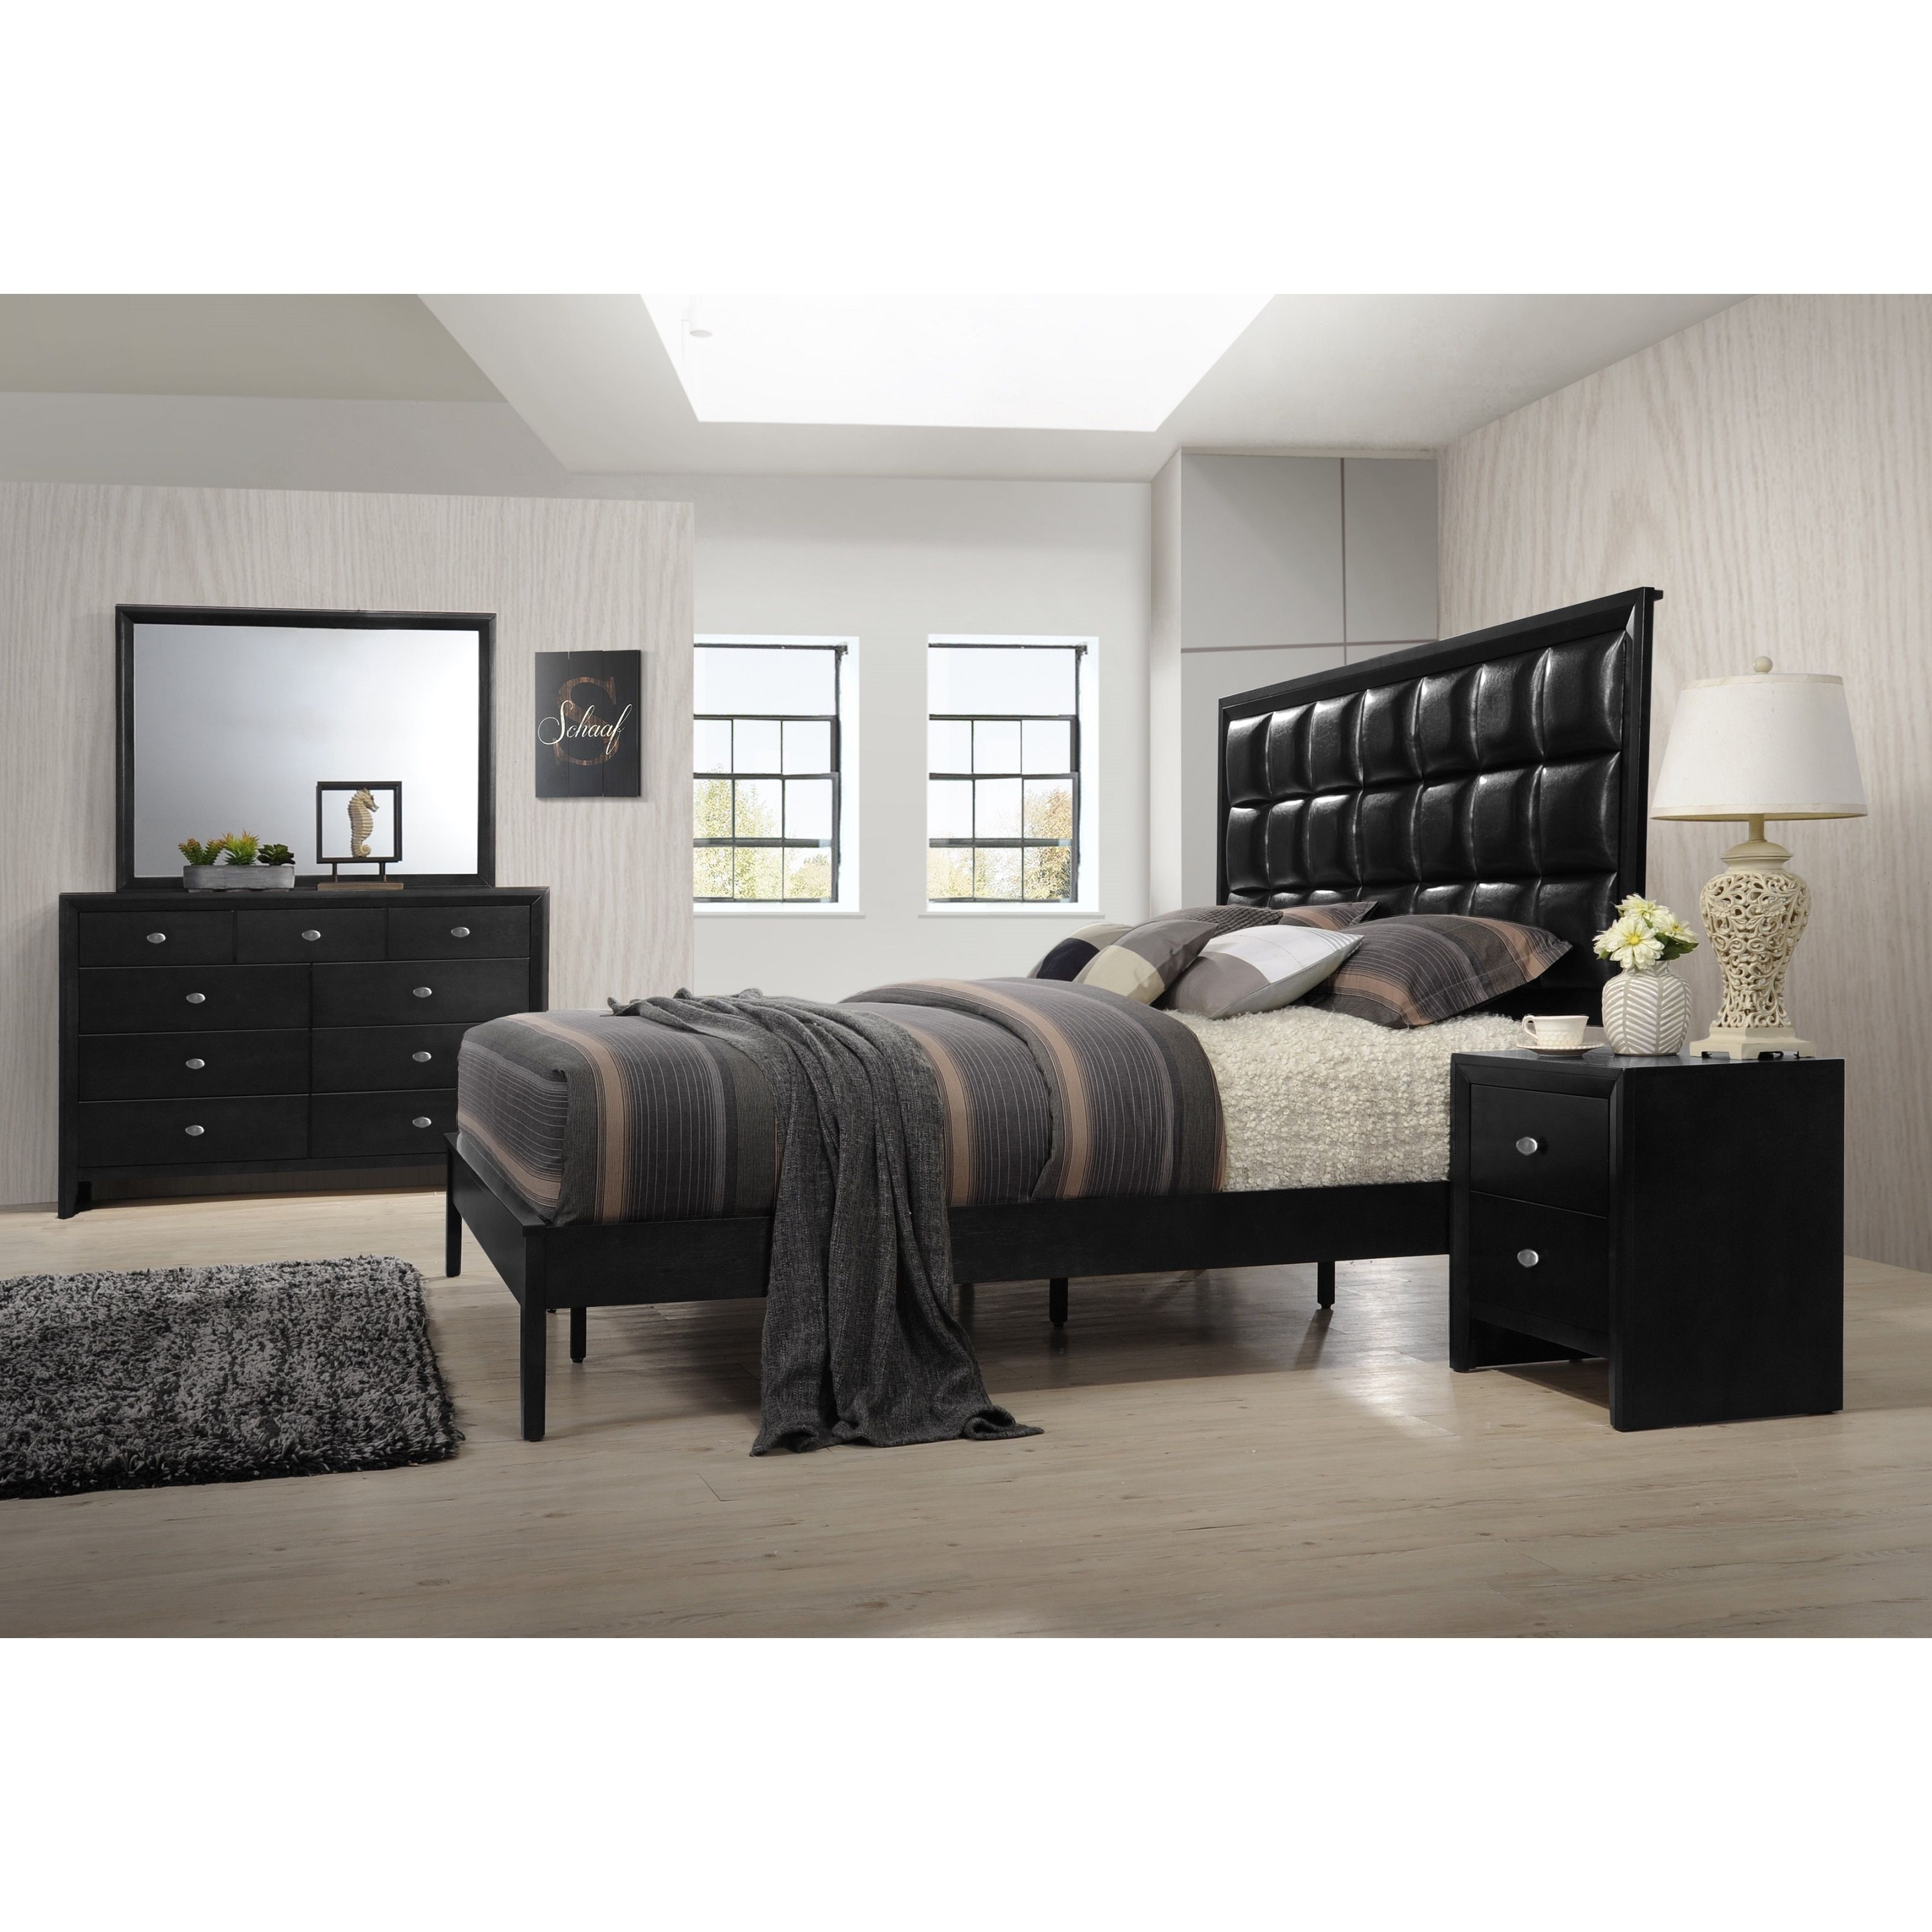 Gloria 350 Black Finish Wood and Upholstered Bed Room Set, King Bed ...